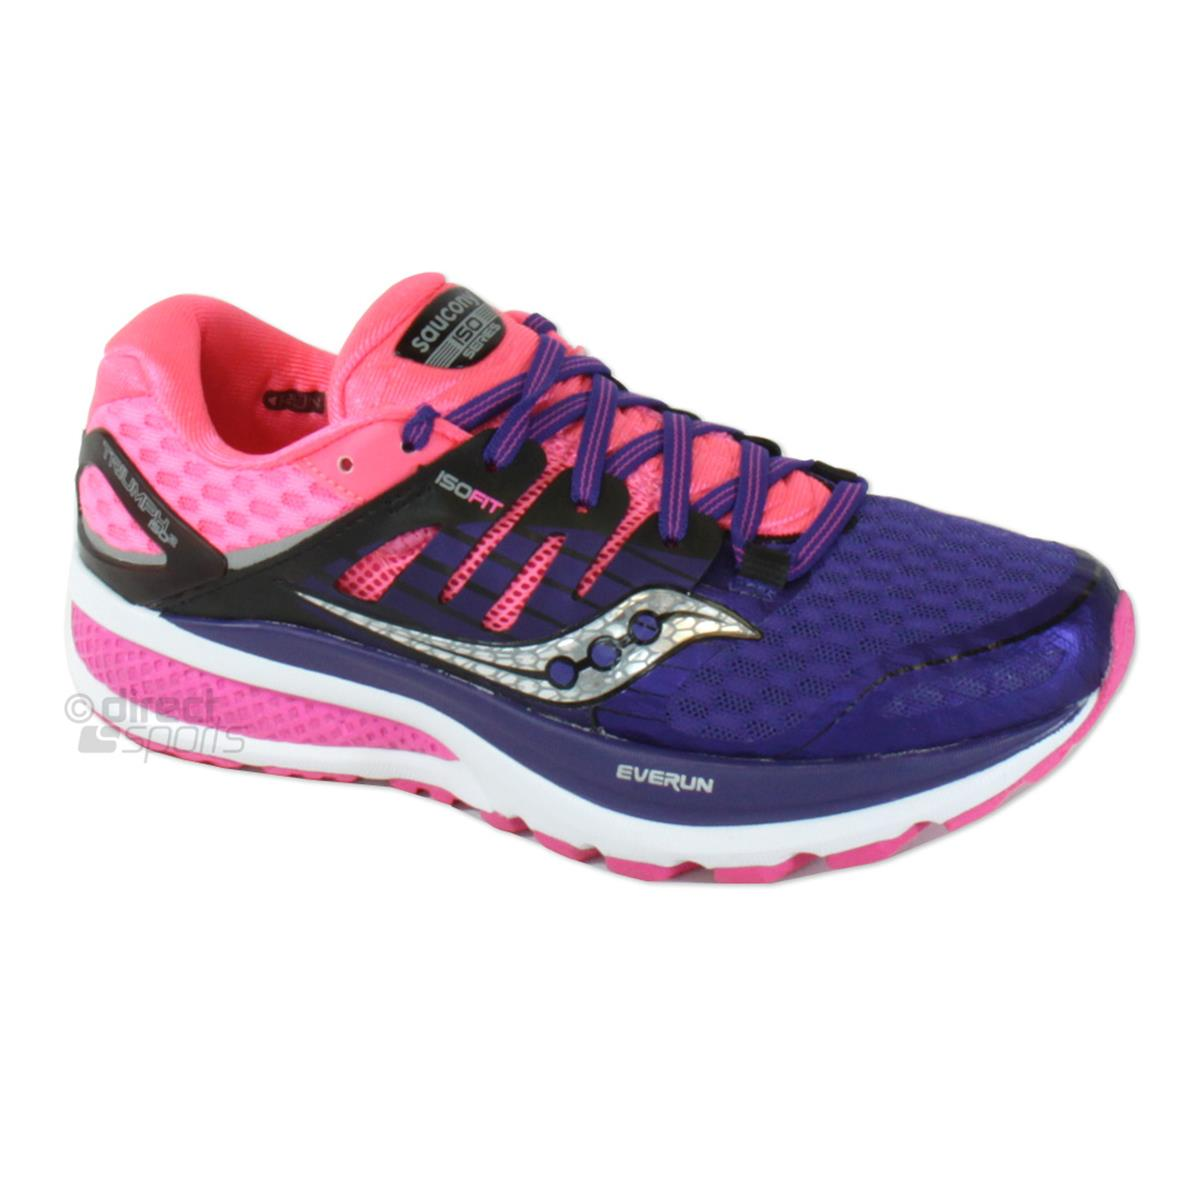 Saucony Triumph ISO 2 Womens Running Shoes (Purple-Pink